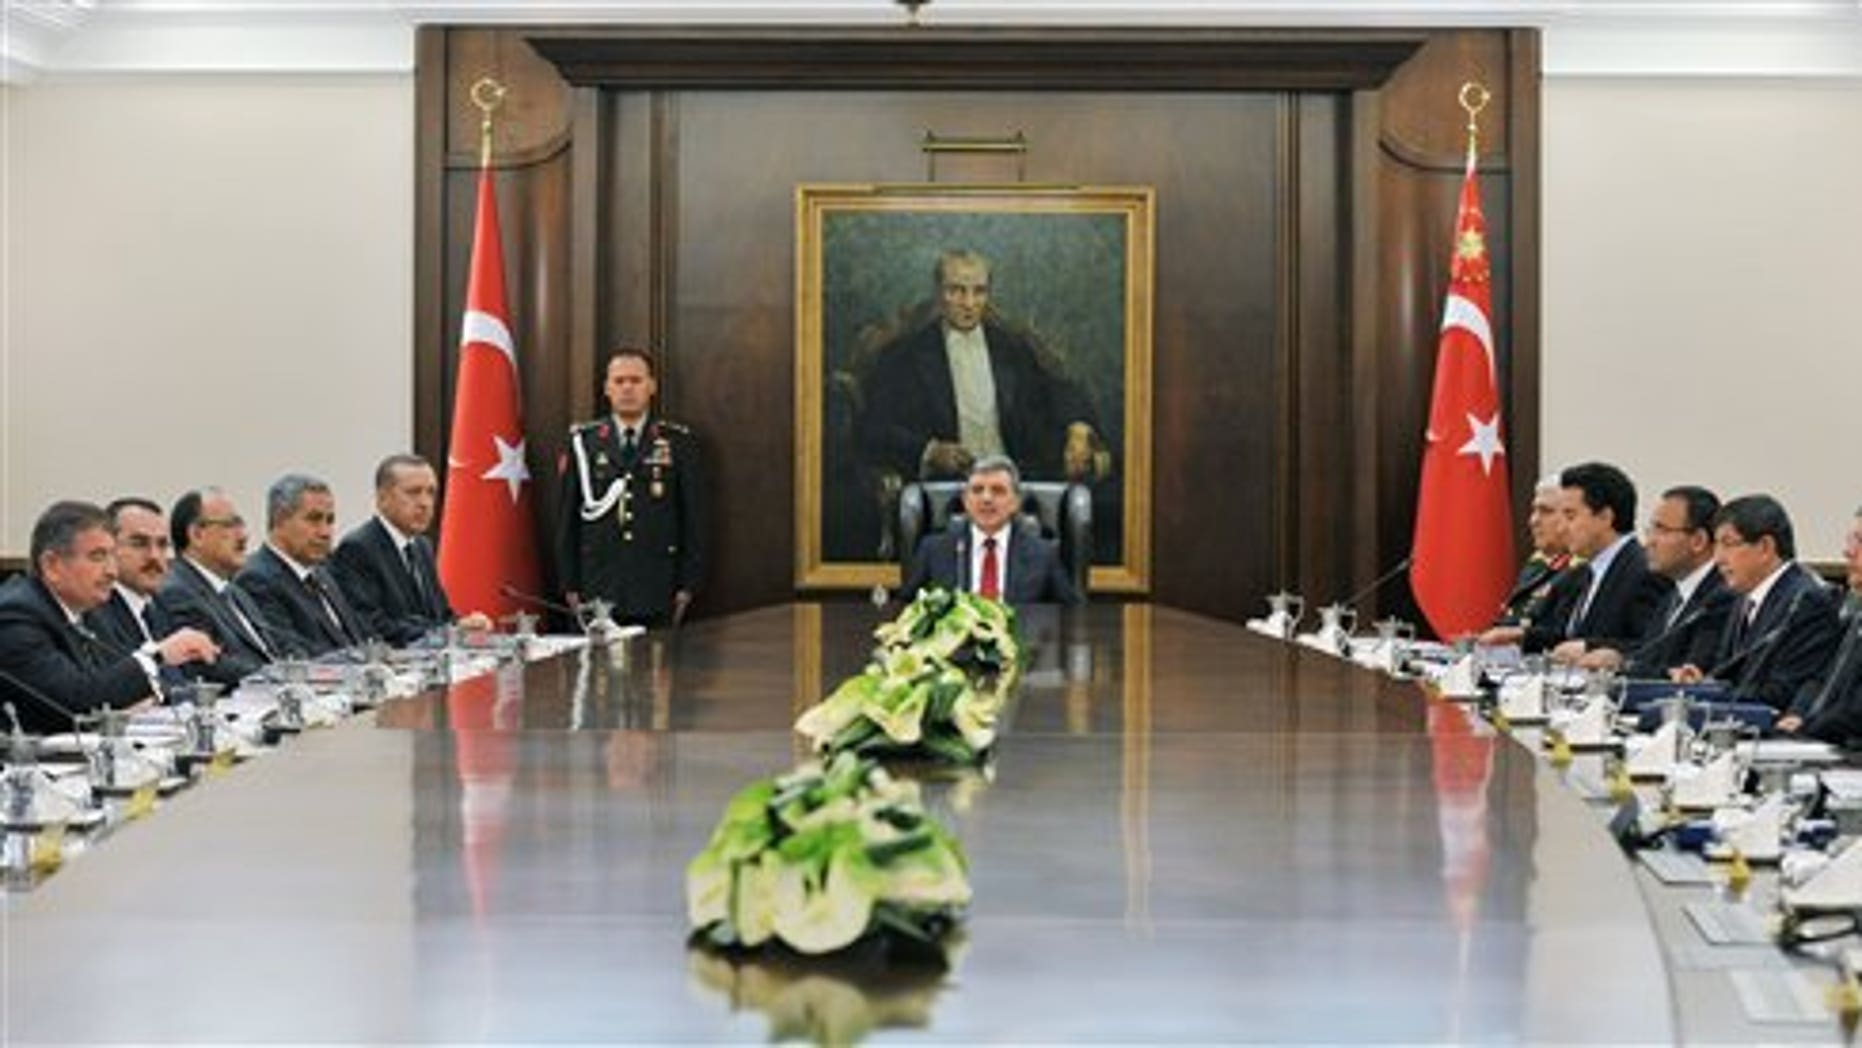 August 18: President Abdullah Gul, center, chairs a National Security Council meeting with Prime Minister Recep Tayyip Erdogan, 5th from left, ministers and top military commanders, two days after Kurdish rebels killed 8 Turkish soldiers at the Turkey-Iraq border, at the Presidential Palace in Ankara, Turkey.